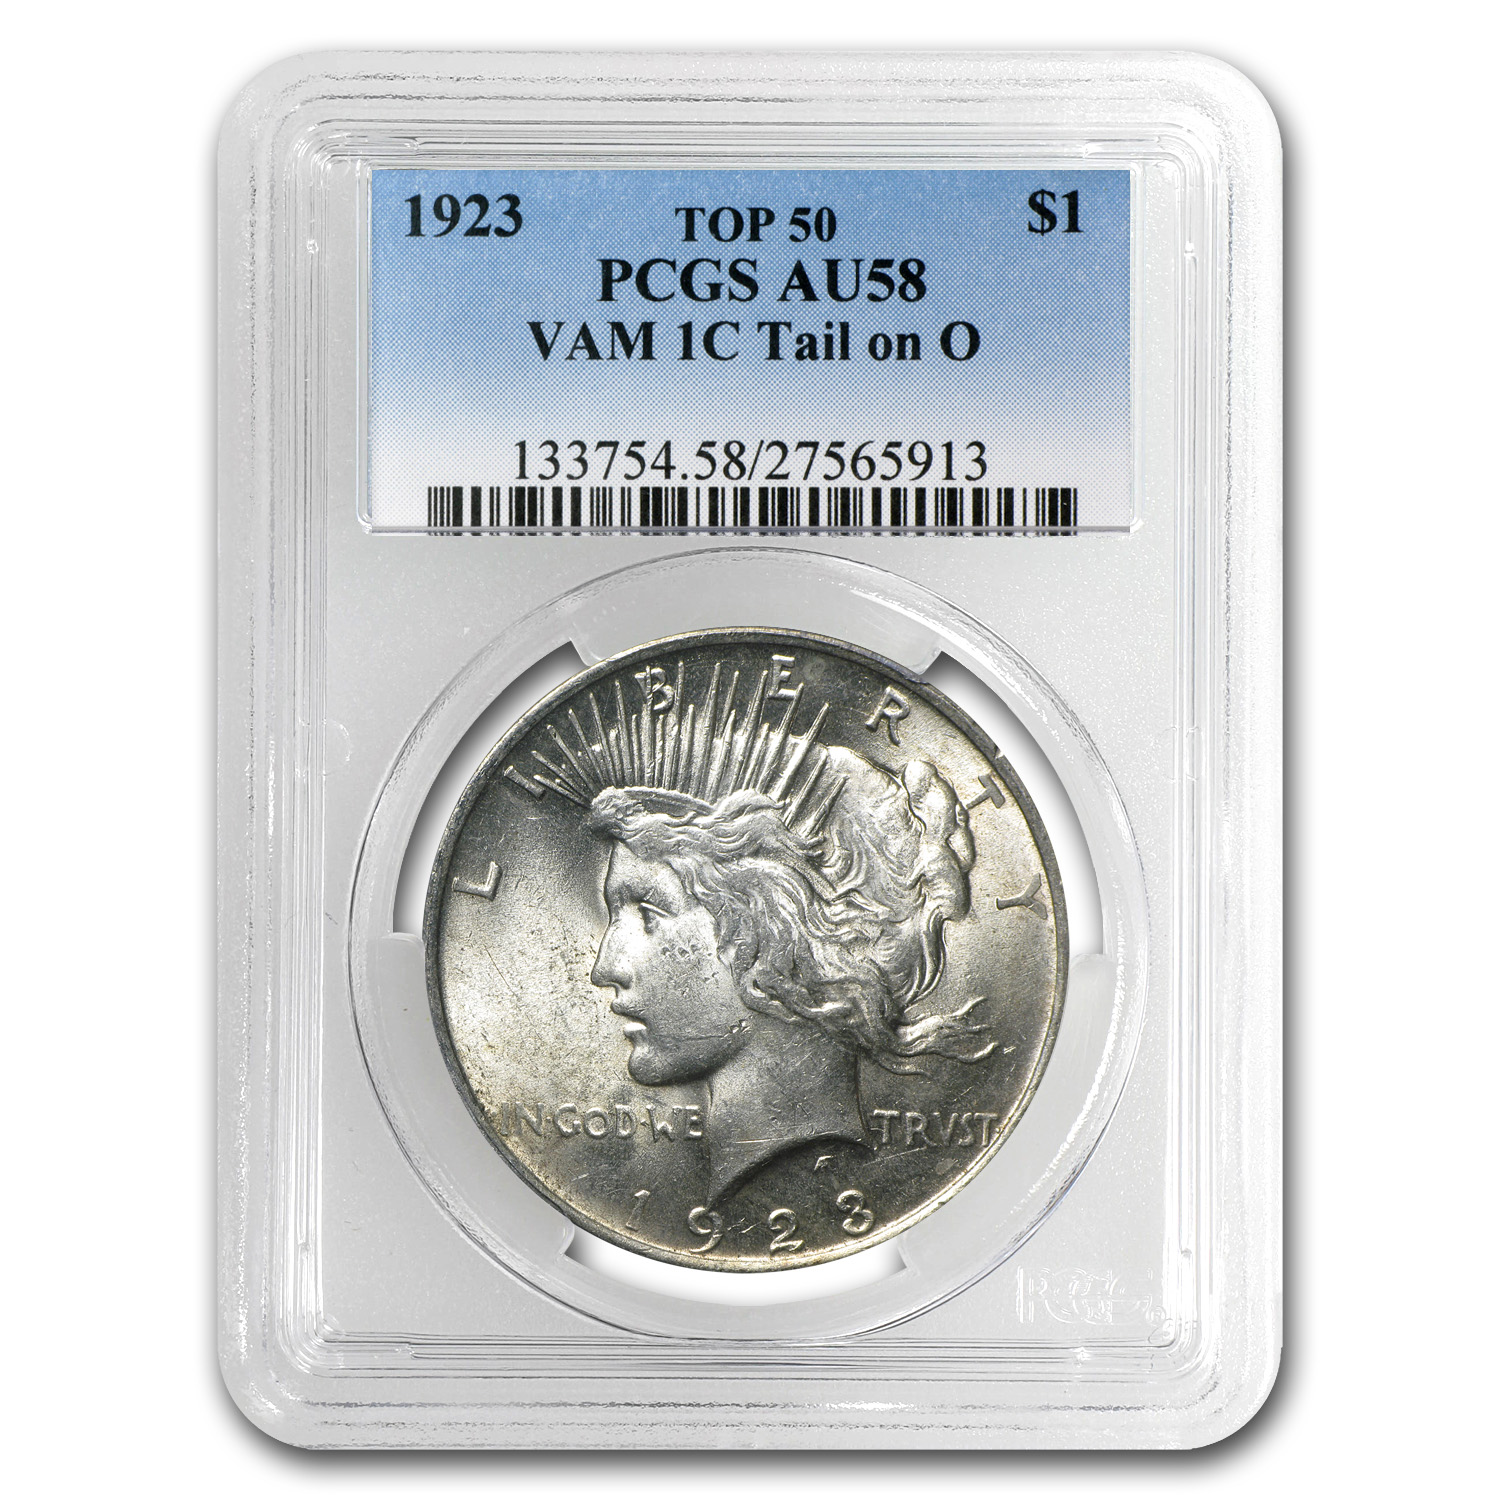 1923 Peace Dollar AU-58 PCGS (VAM-1C Tail On O LDS, Top-50)